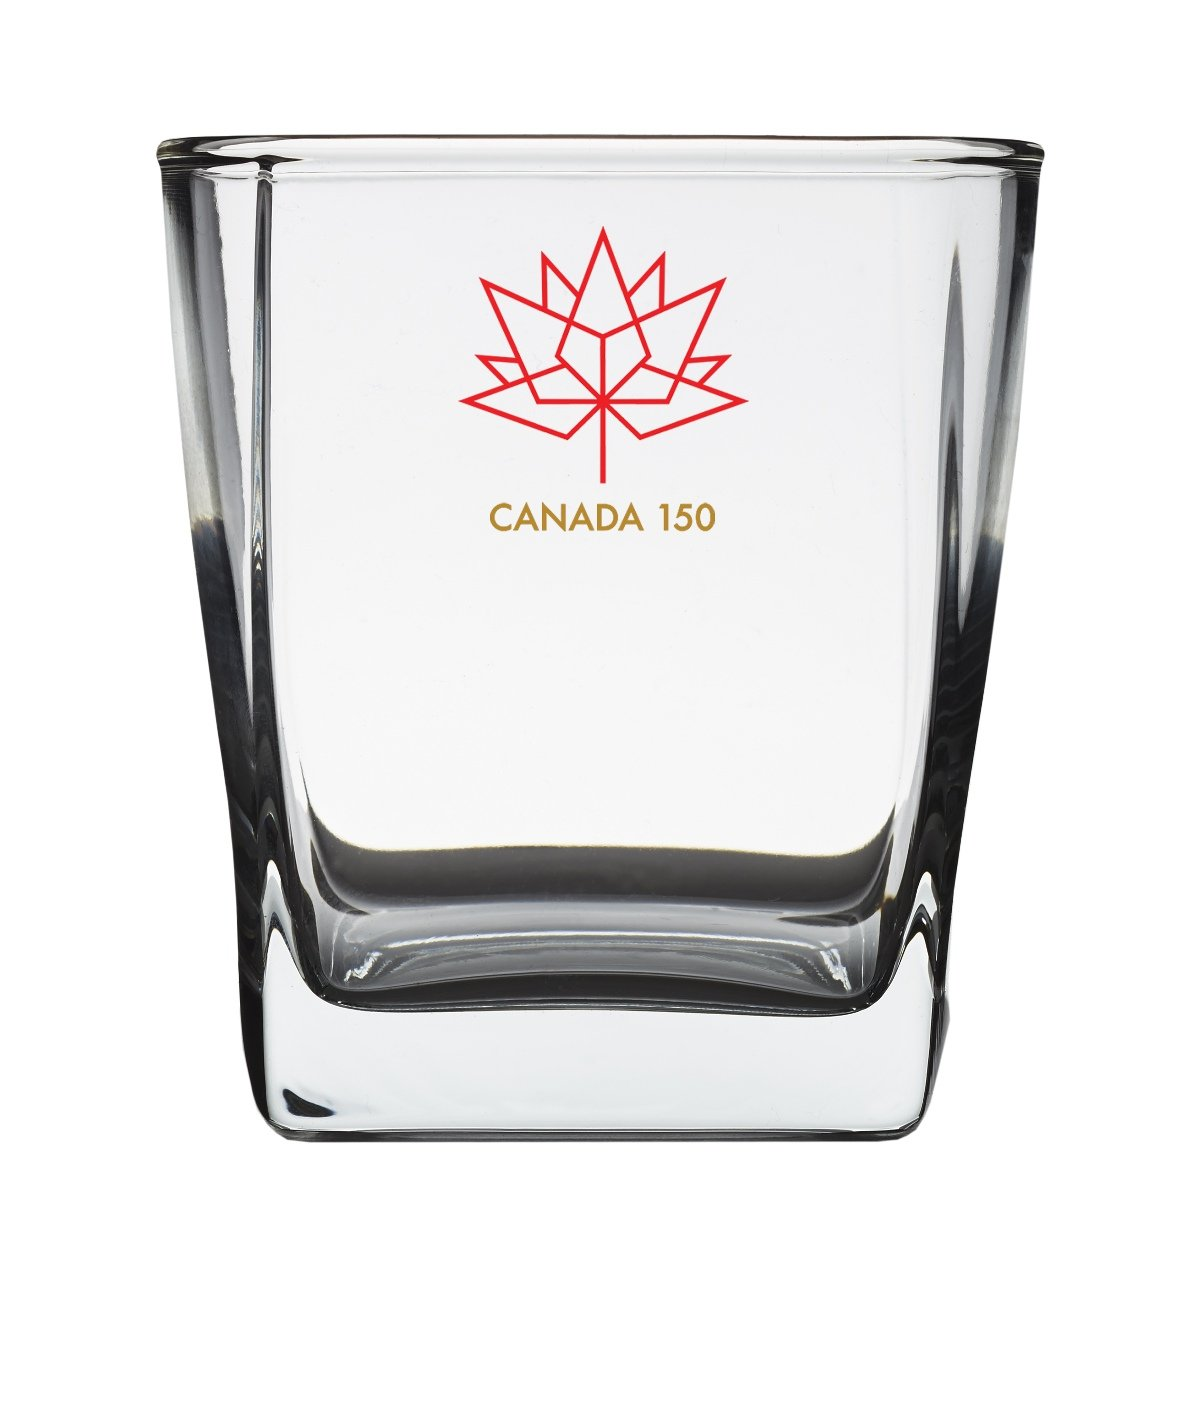 $$9.74(was $17.99) Canada 150 Years Anniversary 1867-2017 Logo Deluxe Whisky Glass Set of 2